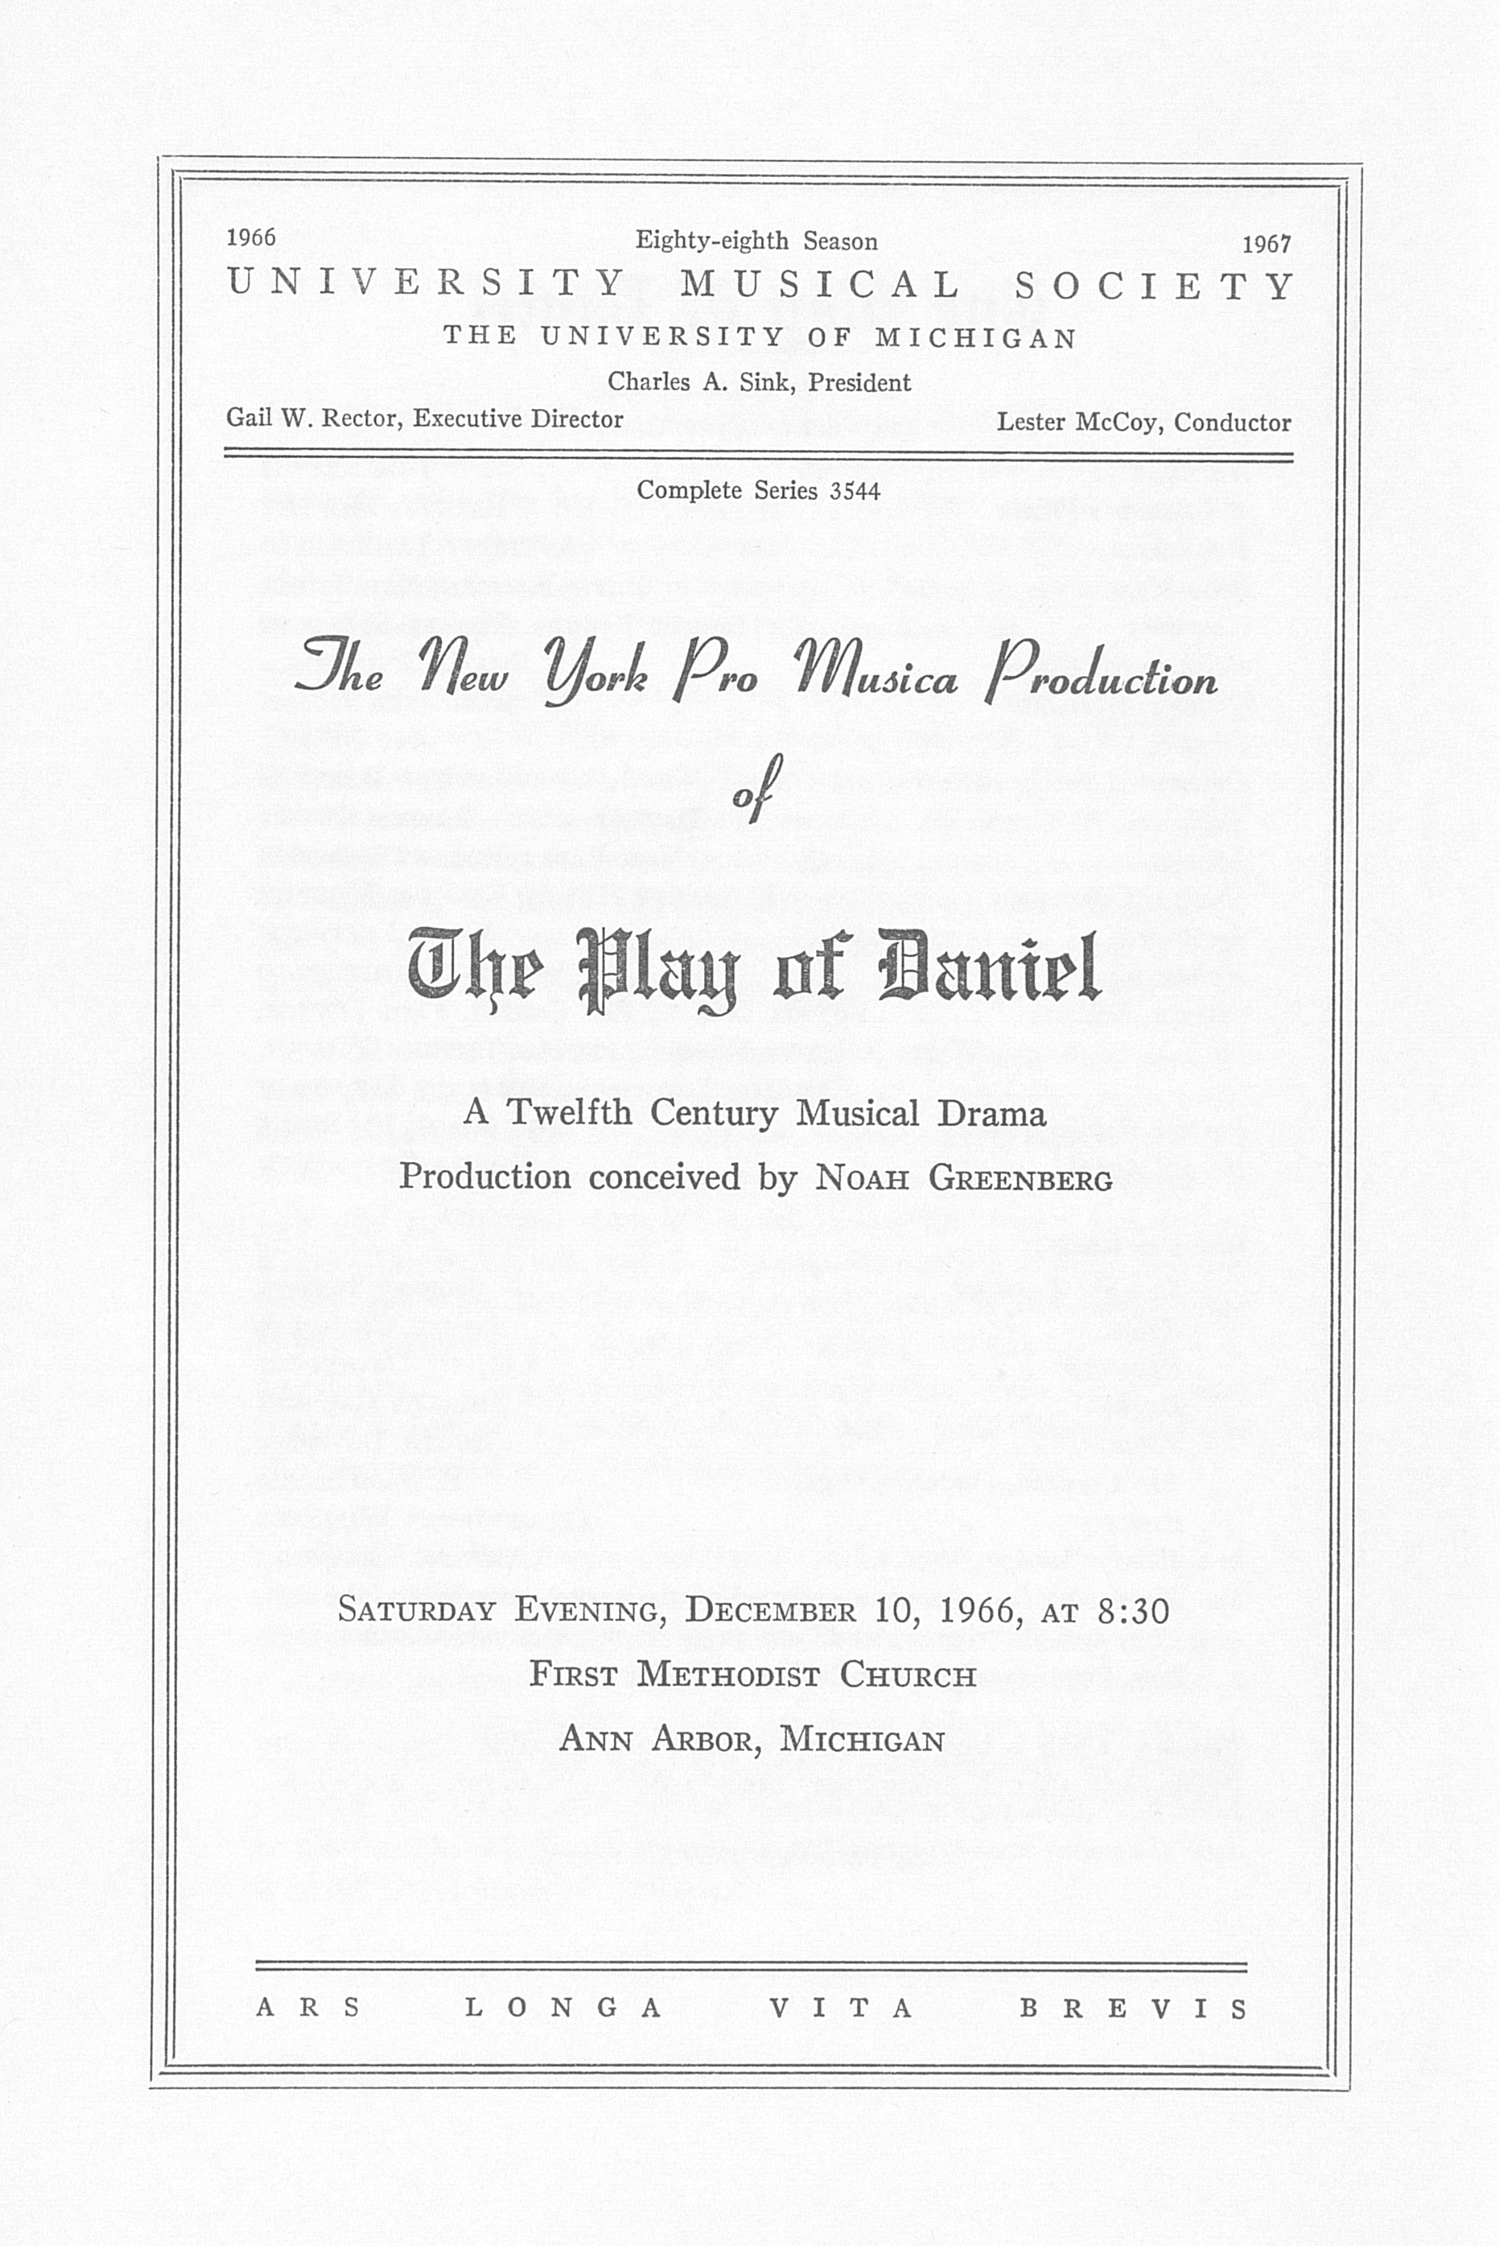 UMS Concert Program, December 10, 1966: The Play Of Daniel -- Noah Greenberg image